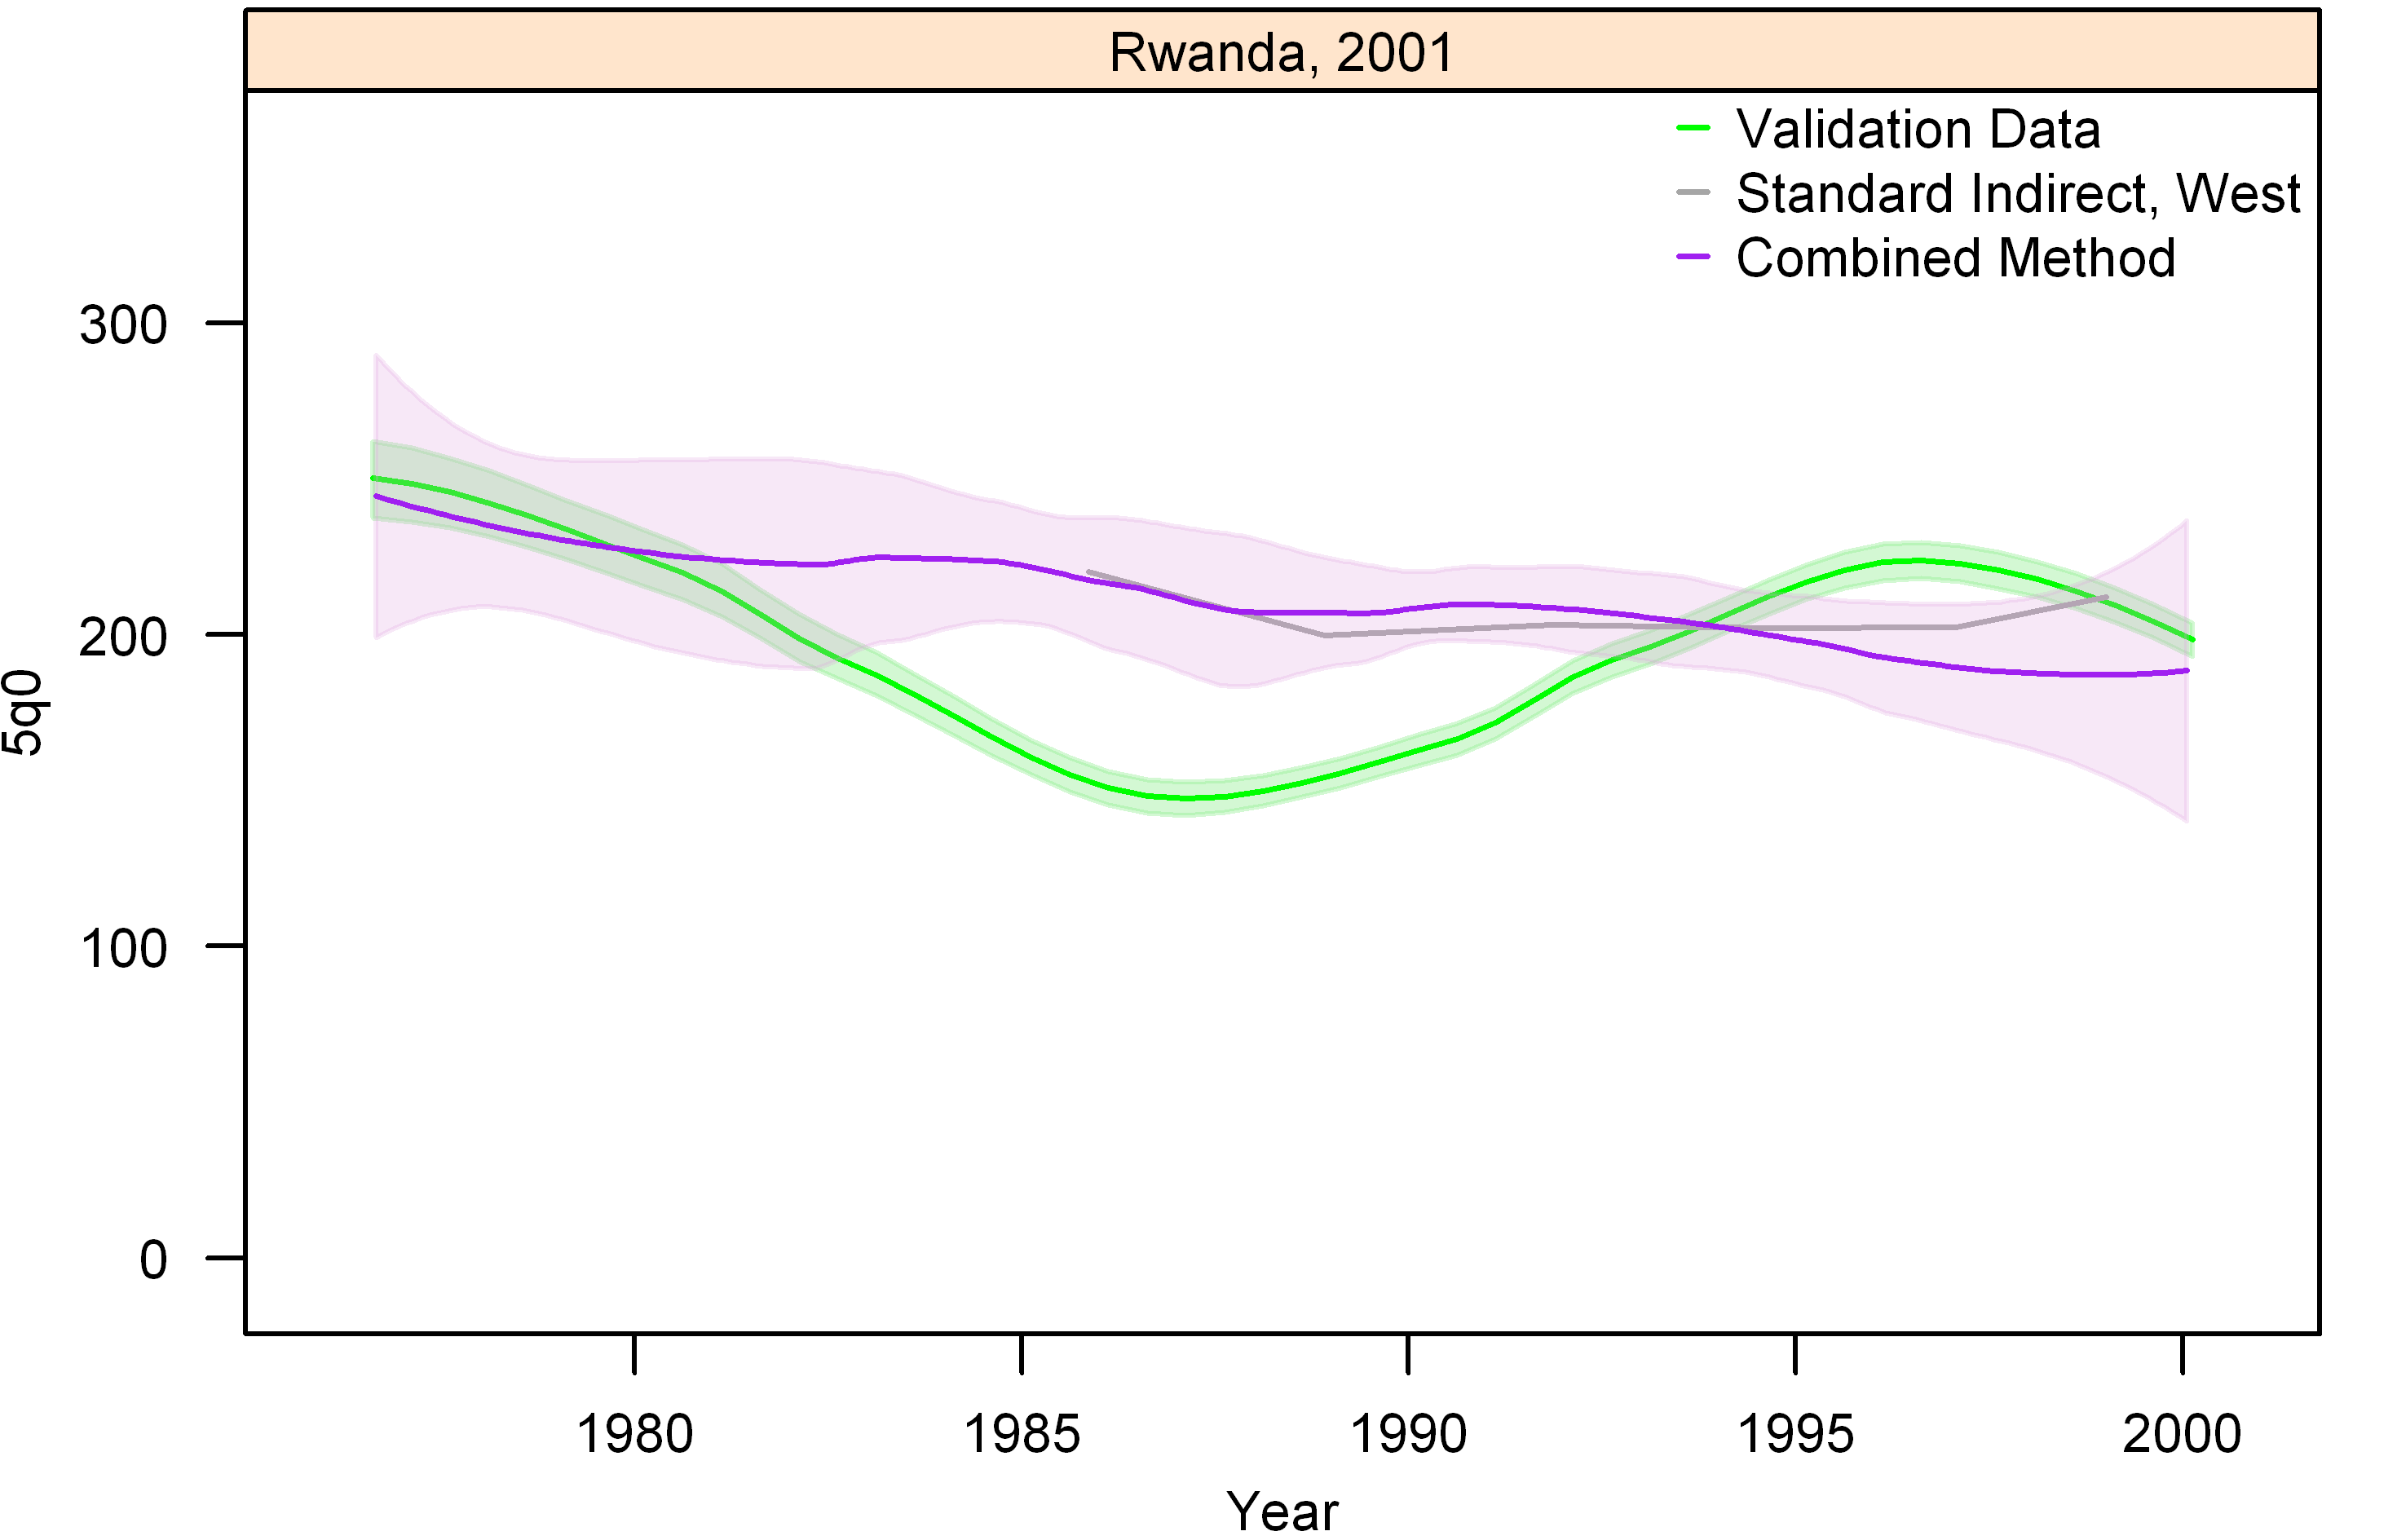 Graphs of estimates from summary birth histories using the best-performing combined method and the standard indirect (West) method. Section II, Rwanda, 2001.